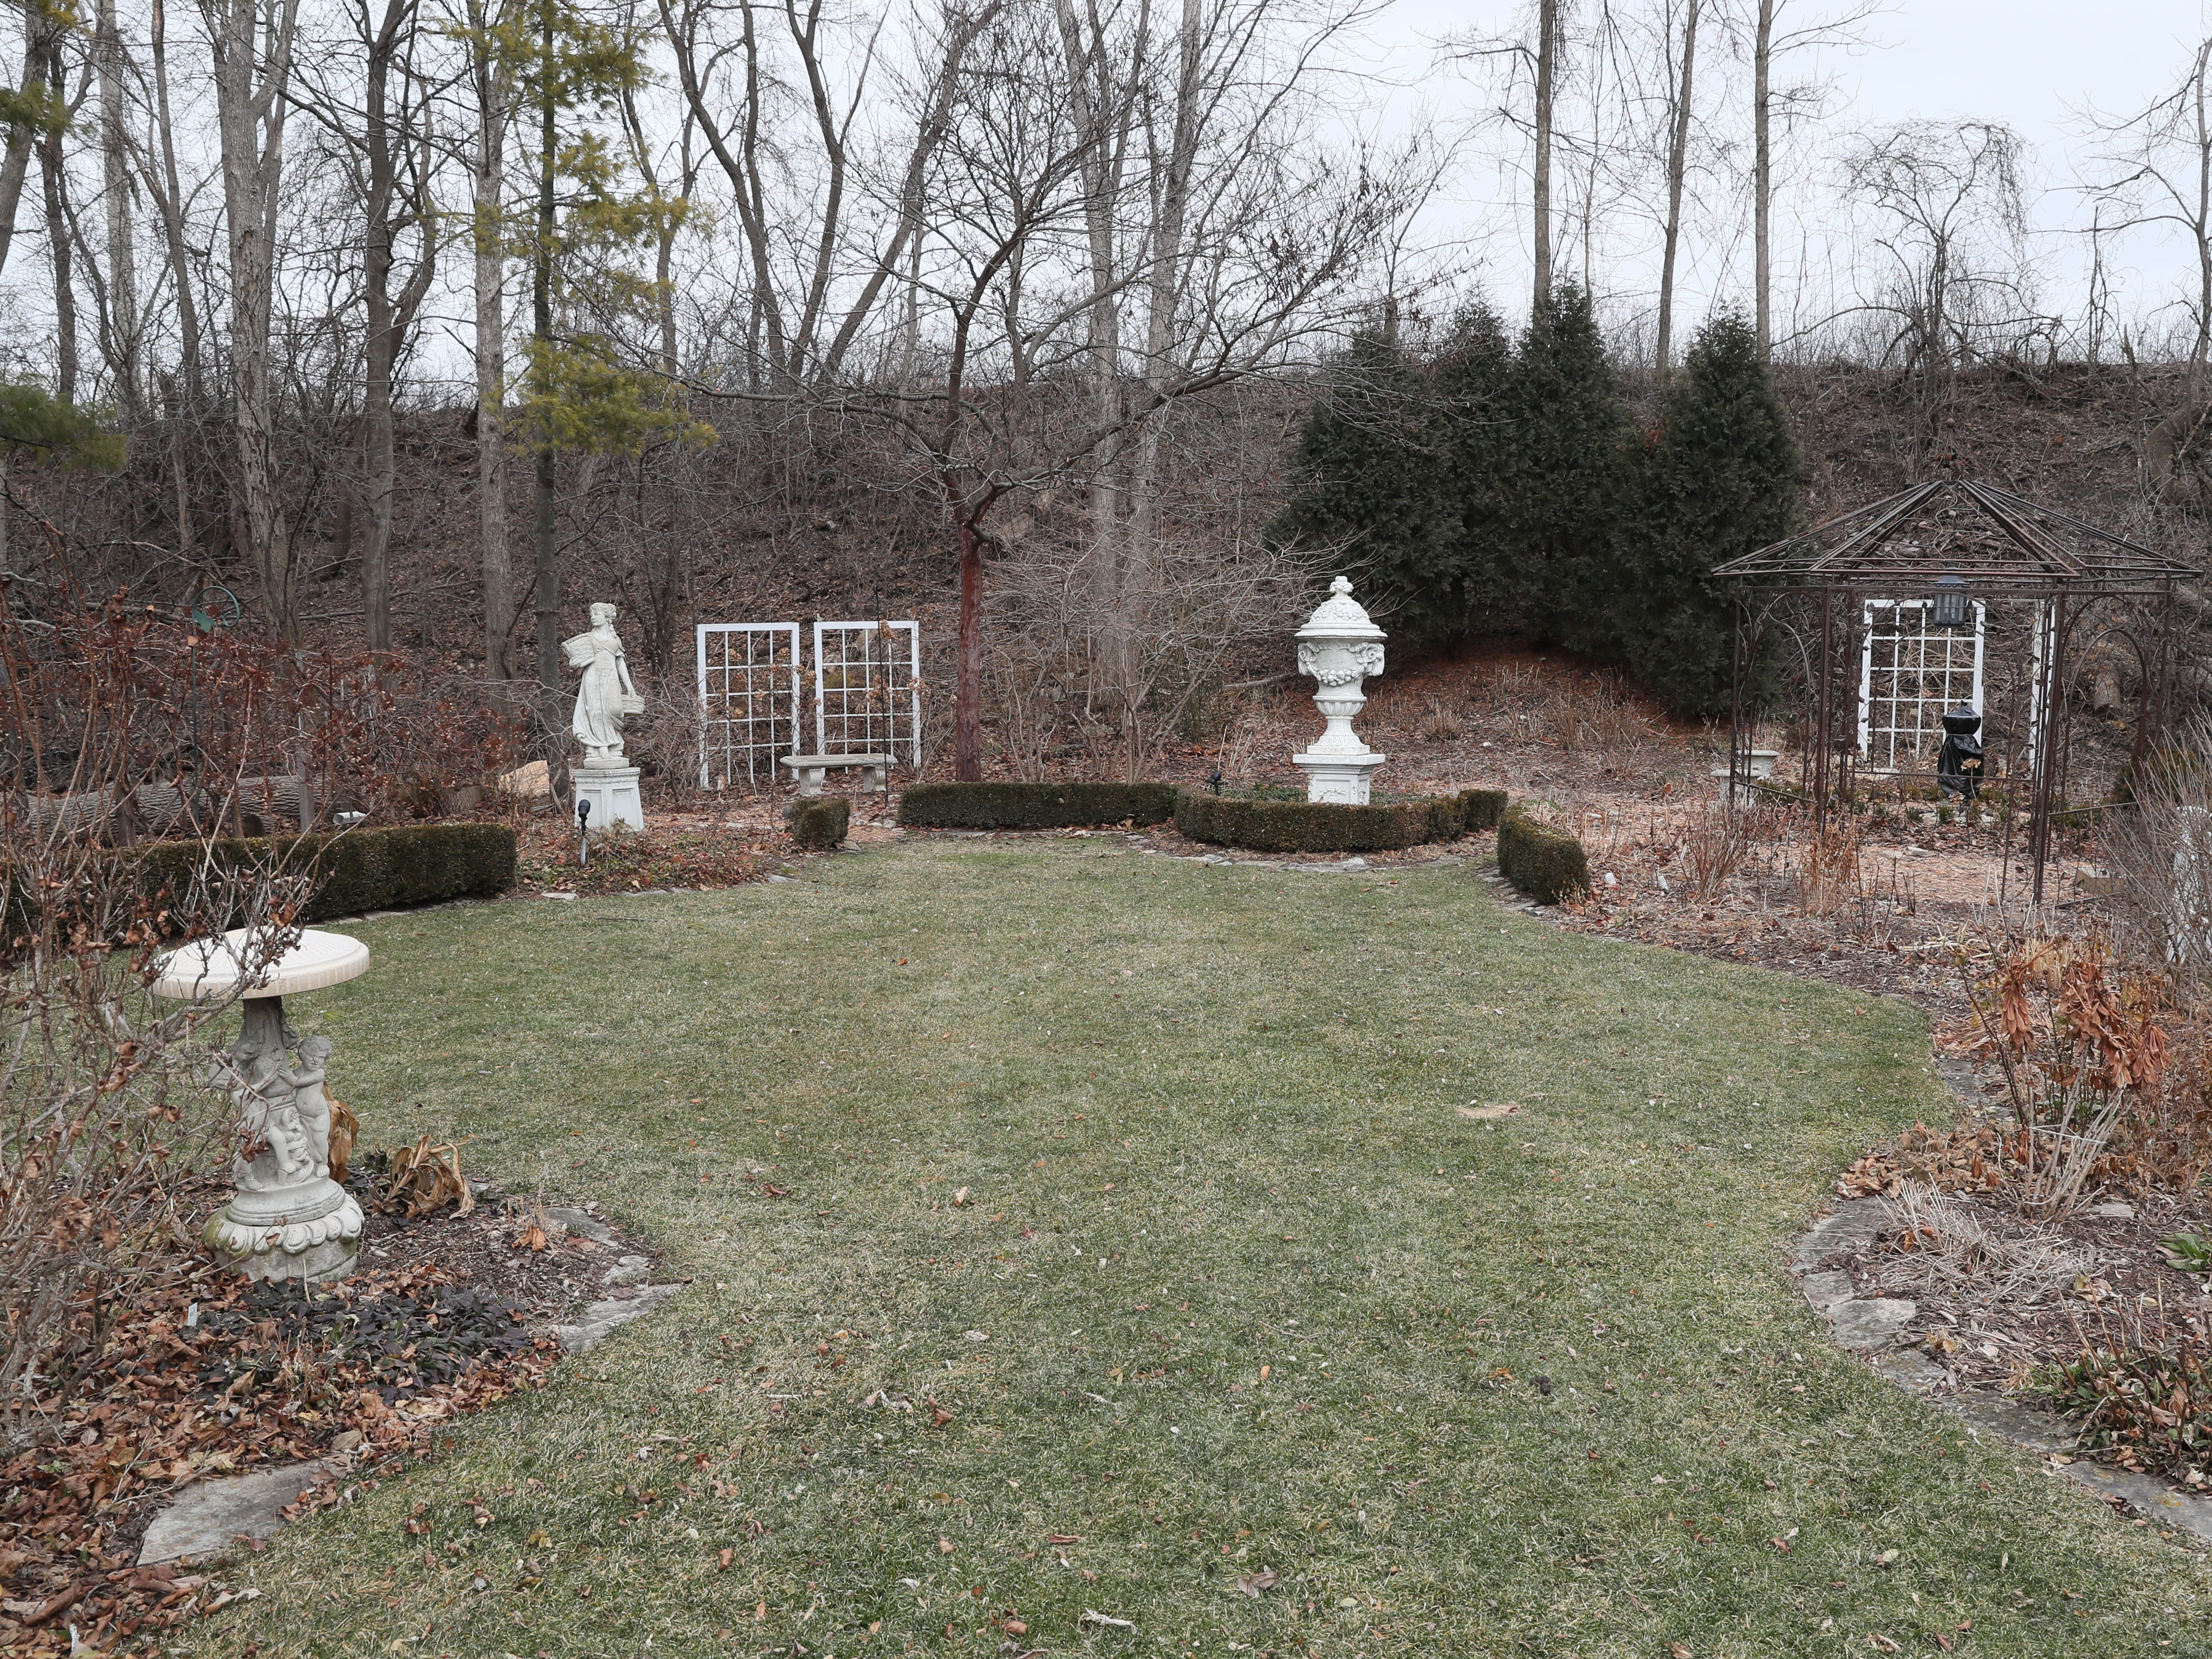 The garden statues and structures add interest to the backyard in winter.